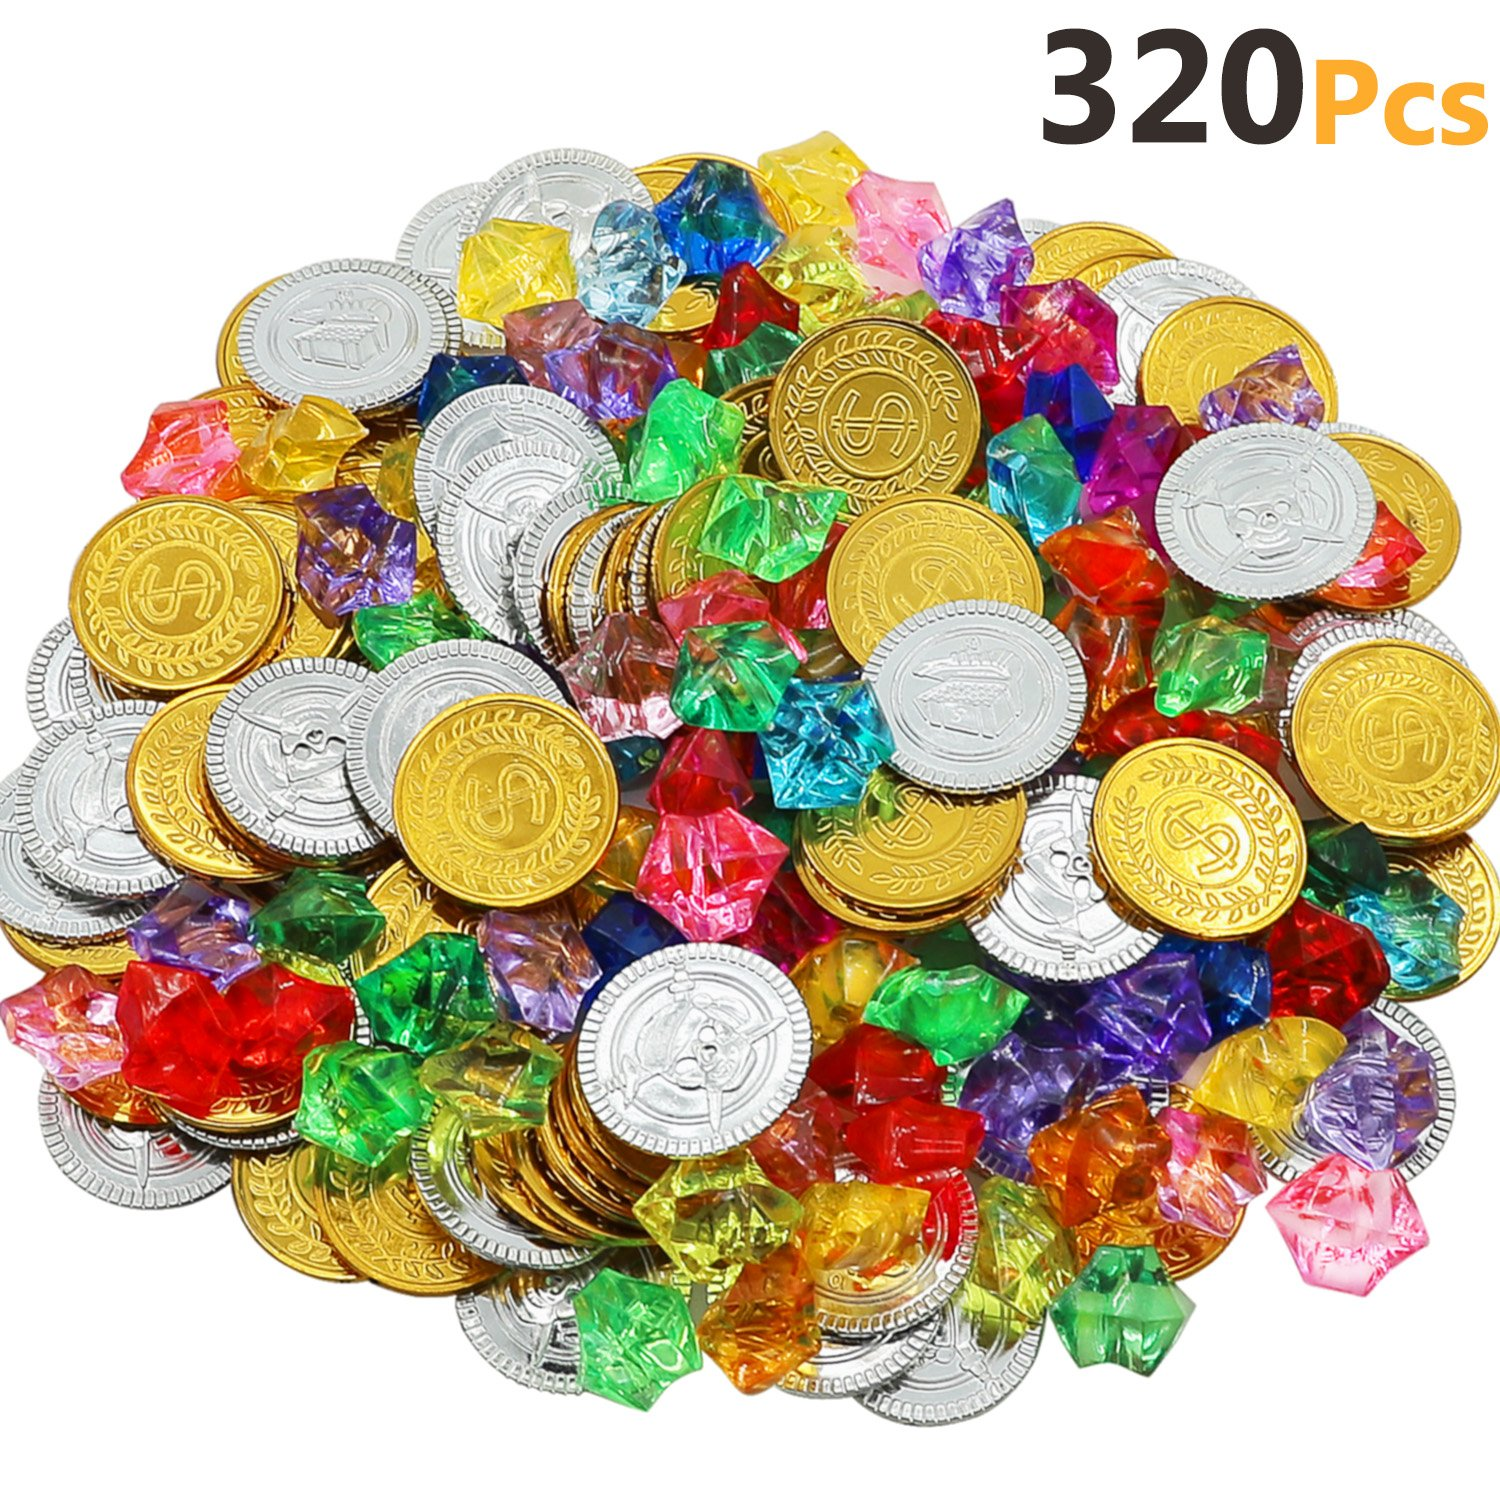 HEHALI 320pcs Pirate Toys Gold Coins and Pirate Gems Jewelery Playset, Treasure for Pirate Party (160 Coins+160 Gems) (Gold) by HEHALI